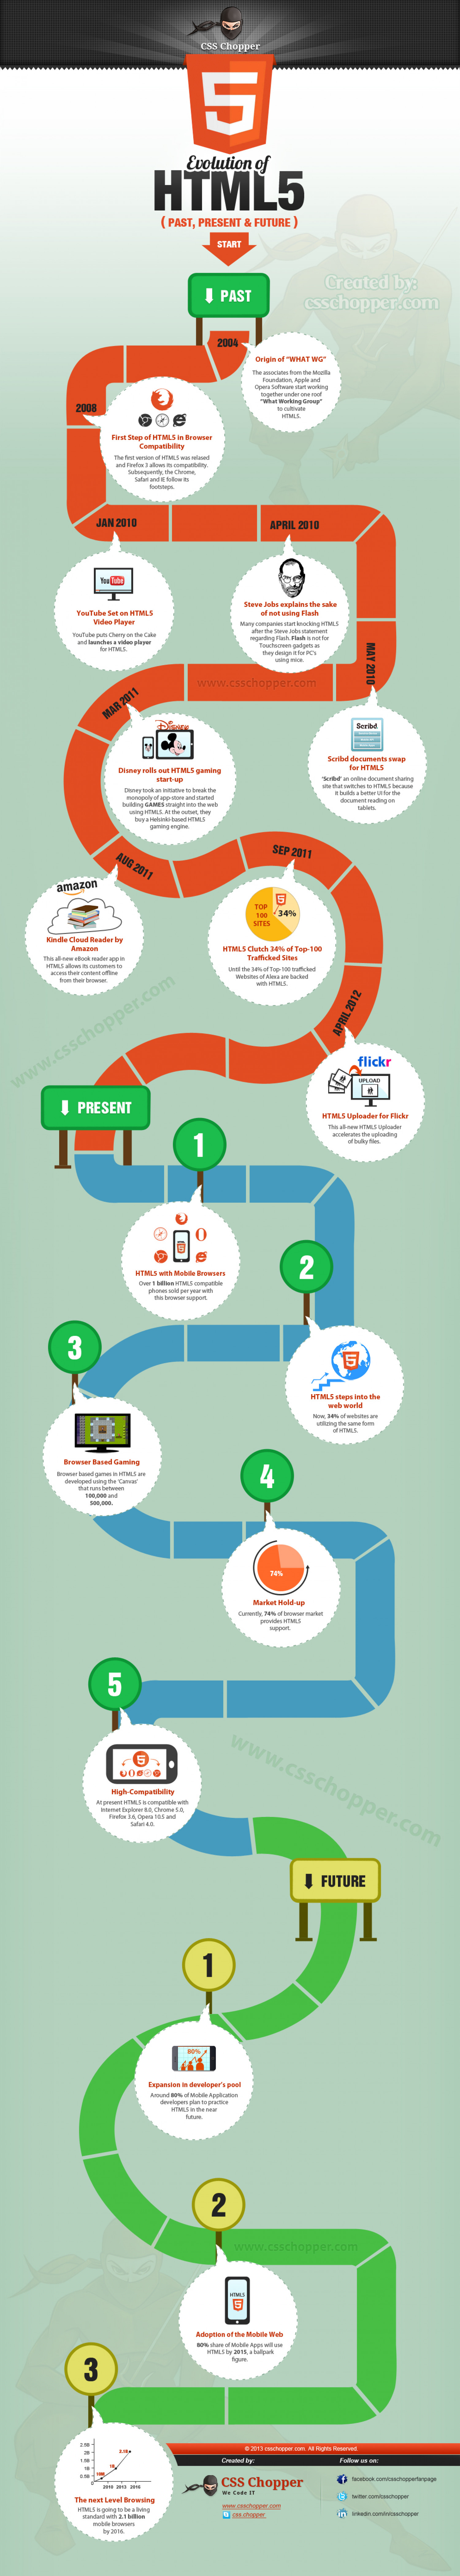 EVOLUTION OF HTML5: AN INFOGRAPHIC BASED ON PAST, PRESENT & FUTURE Infographic